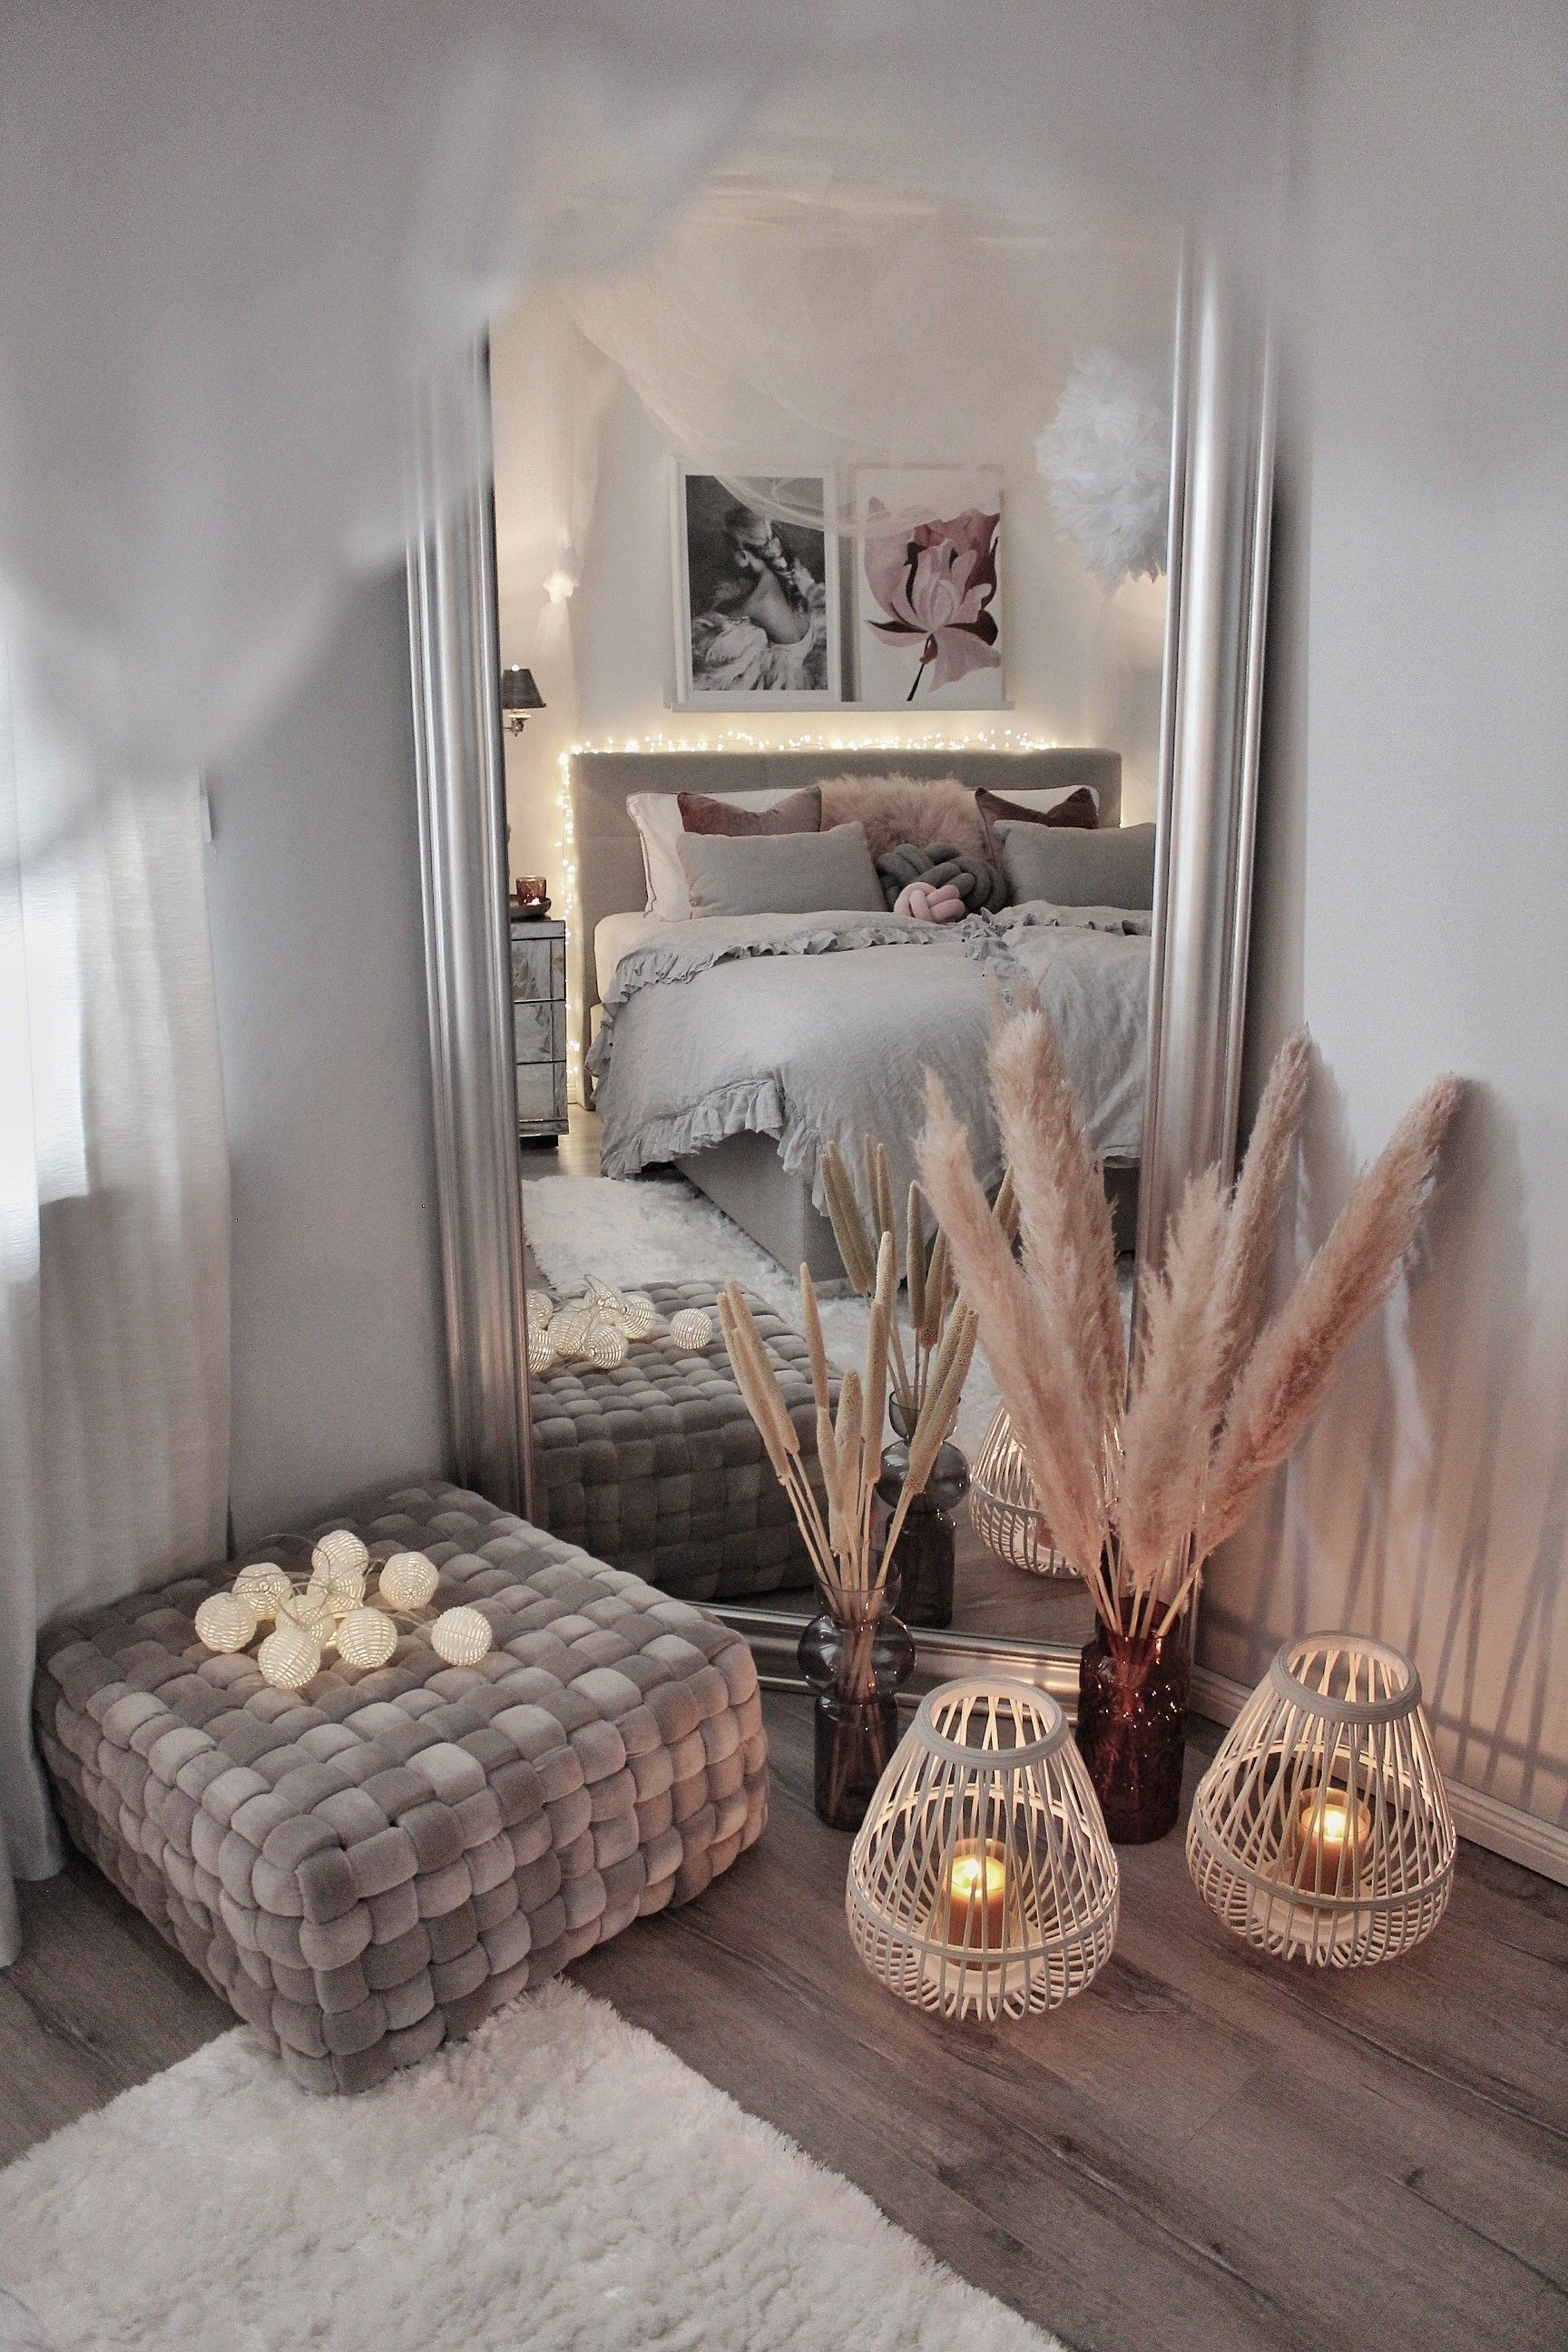 Home Accents Bedroom Home Accents Homeaccents In Diesem